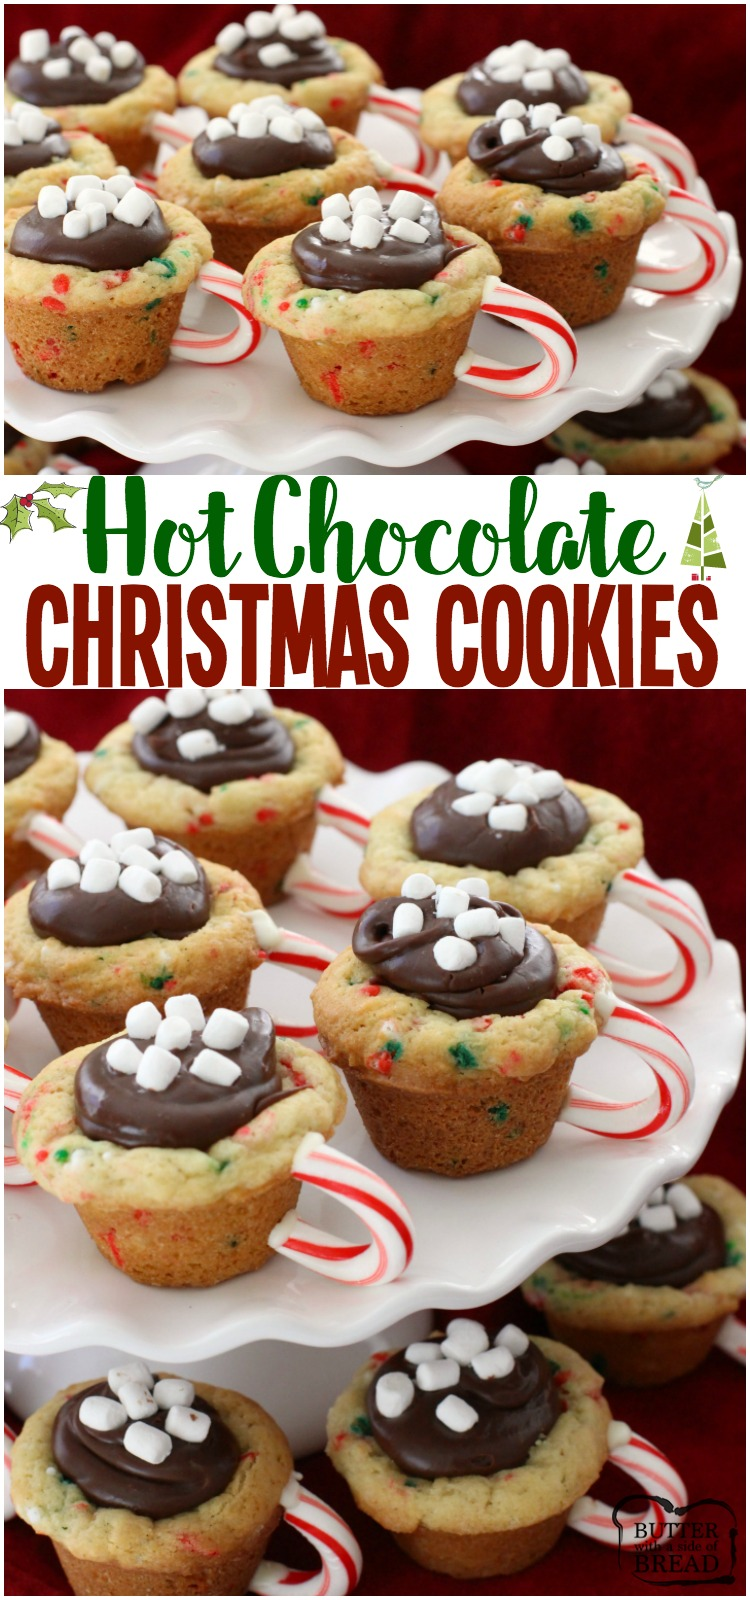 Hot Chocolate Cookie Cups are the most fun & festive Christmas cookies ever! Sugar cookie cups filled with fudge, mini marshmallows & sprinkles with a darling candy cane handle! #Christmas #cookies #hotchocolate #fudge #cookies #baking #holidays #Santa #recipe from BUTTER WITH A SIDE OF BREAD